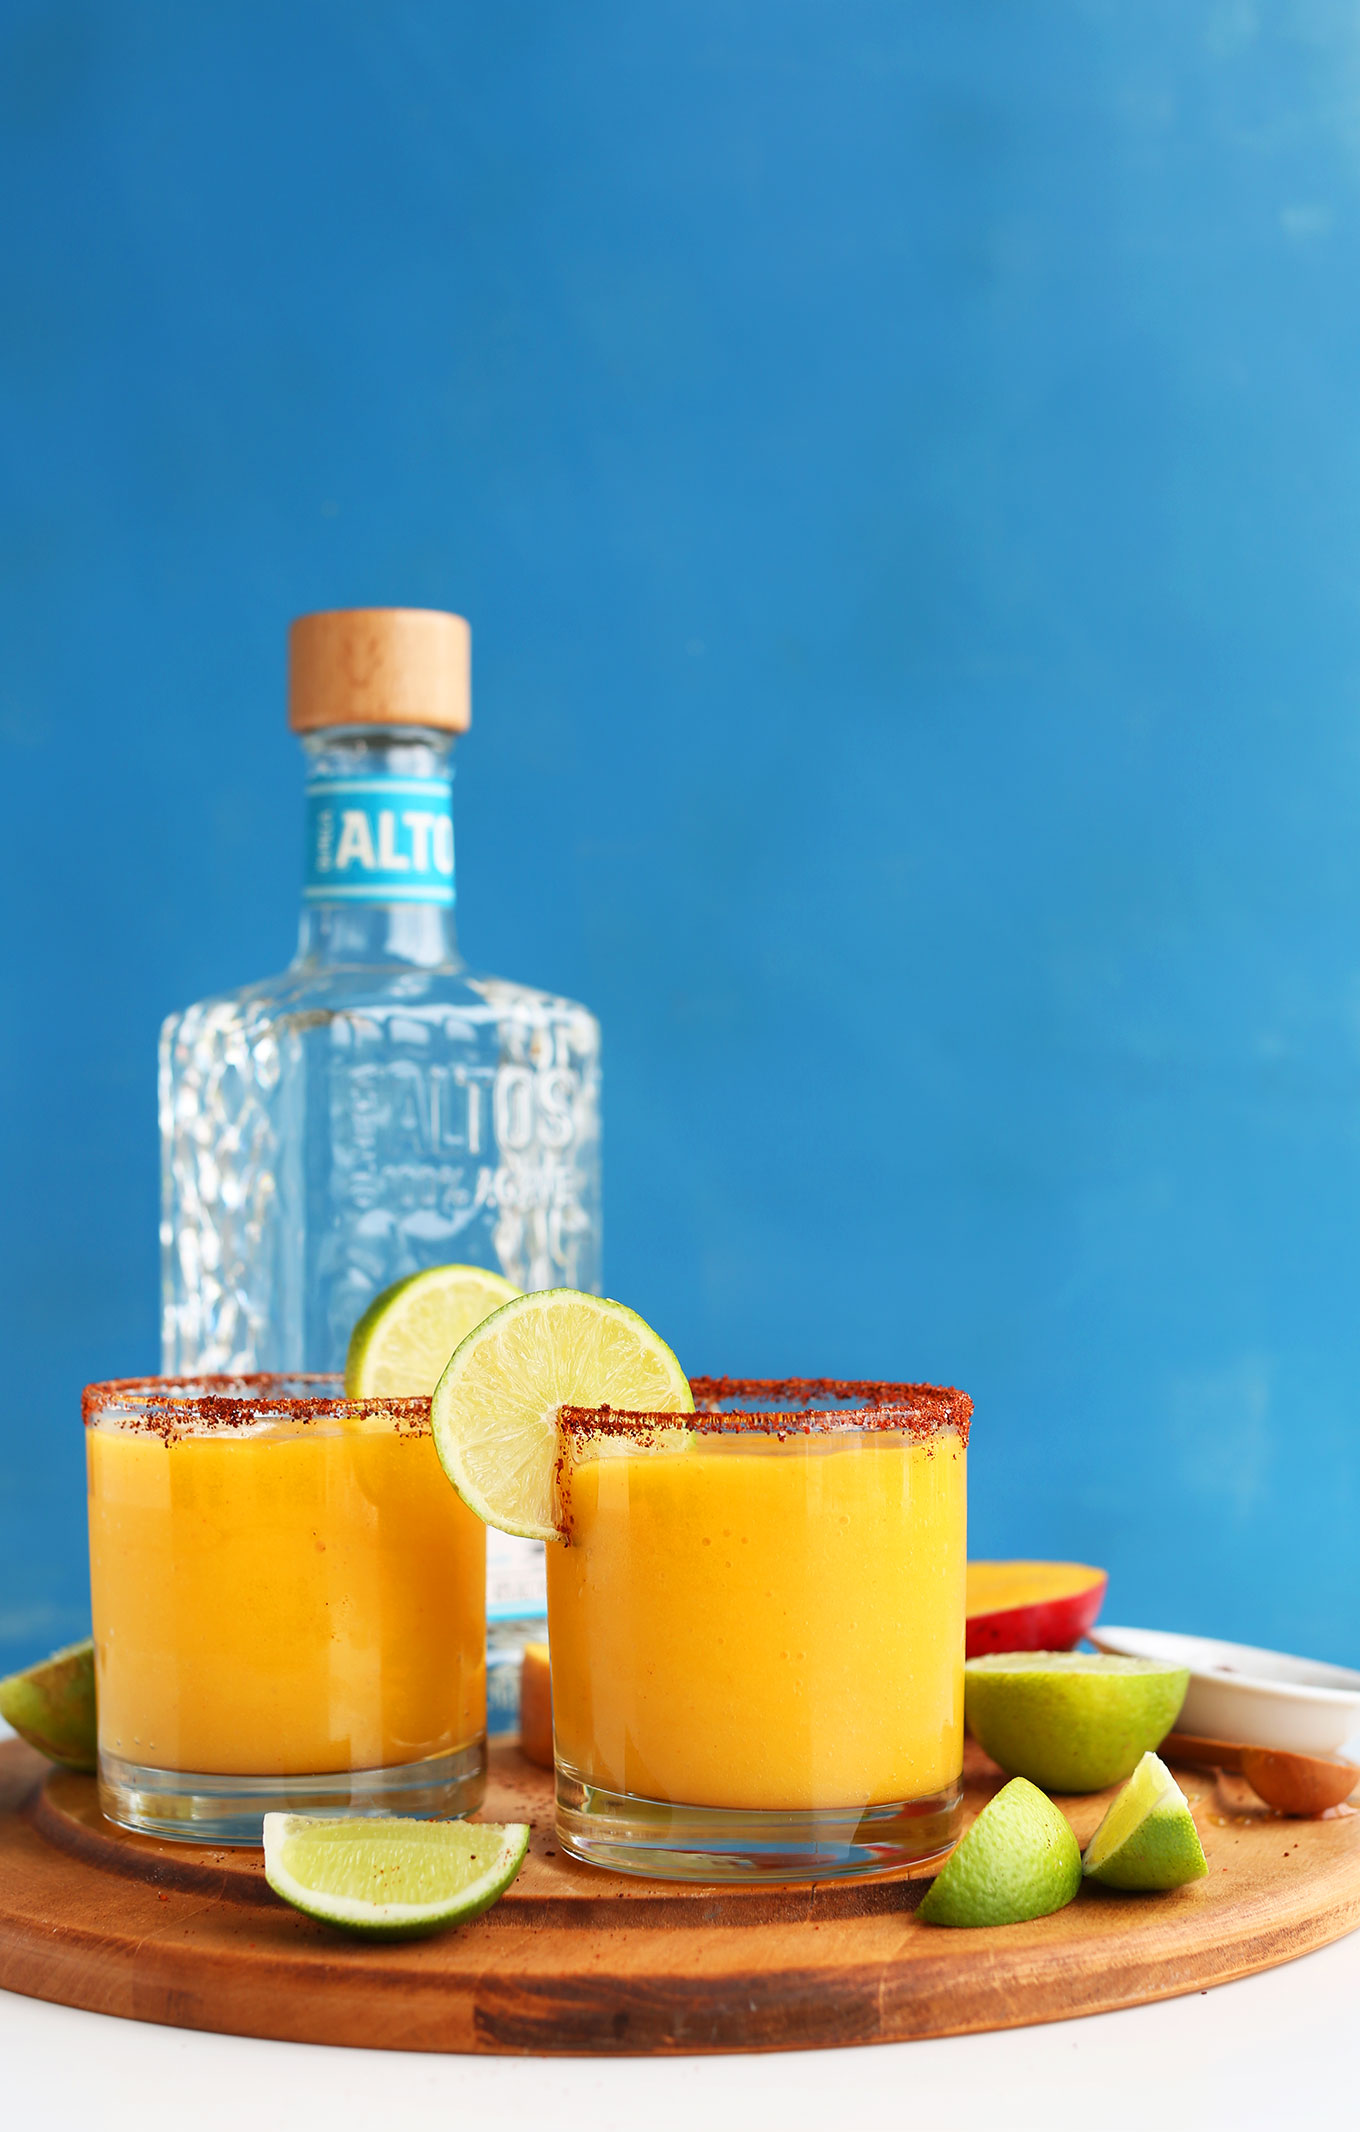 Cutting board with Spicy Sweet Mango Chili Lime Margaritas and ingredients used to make them